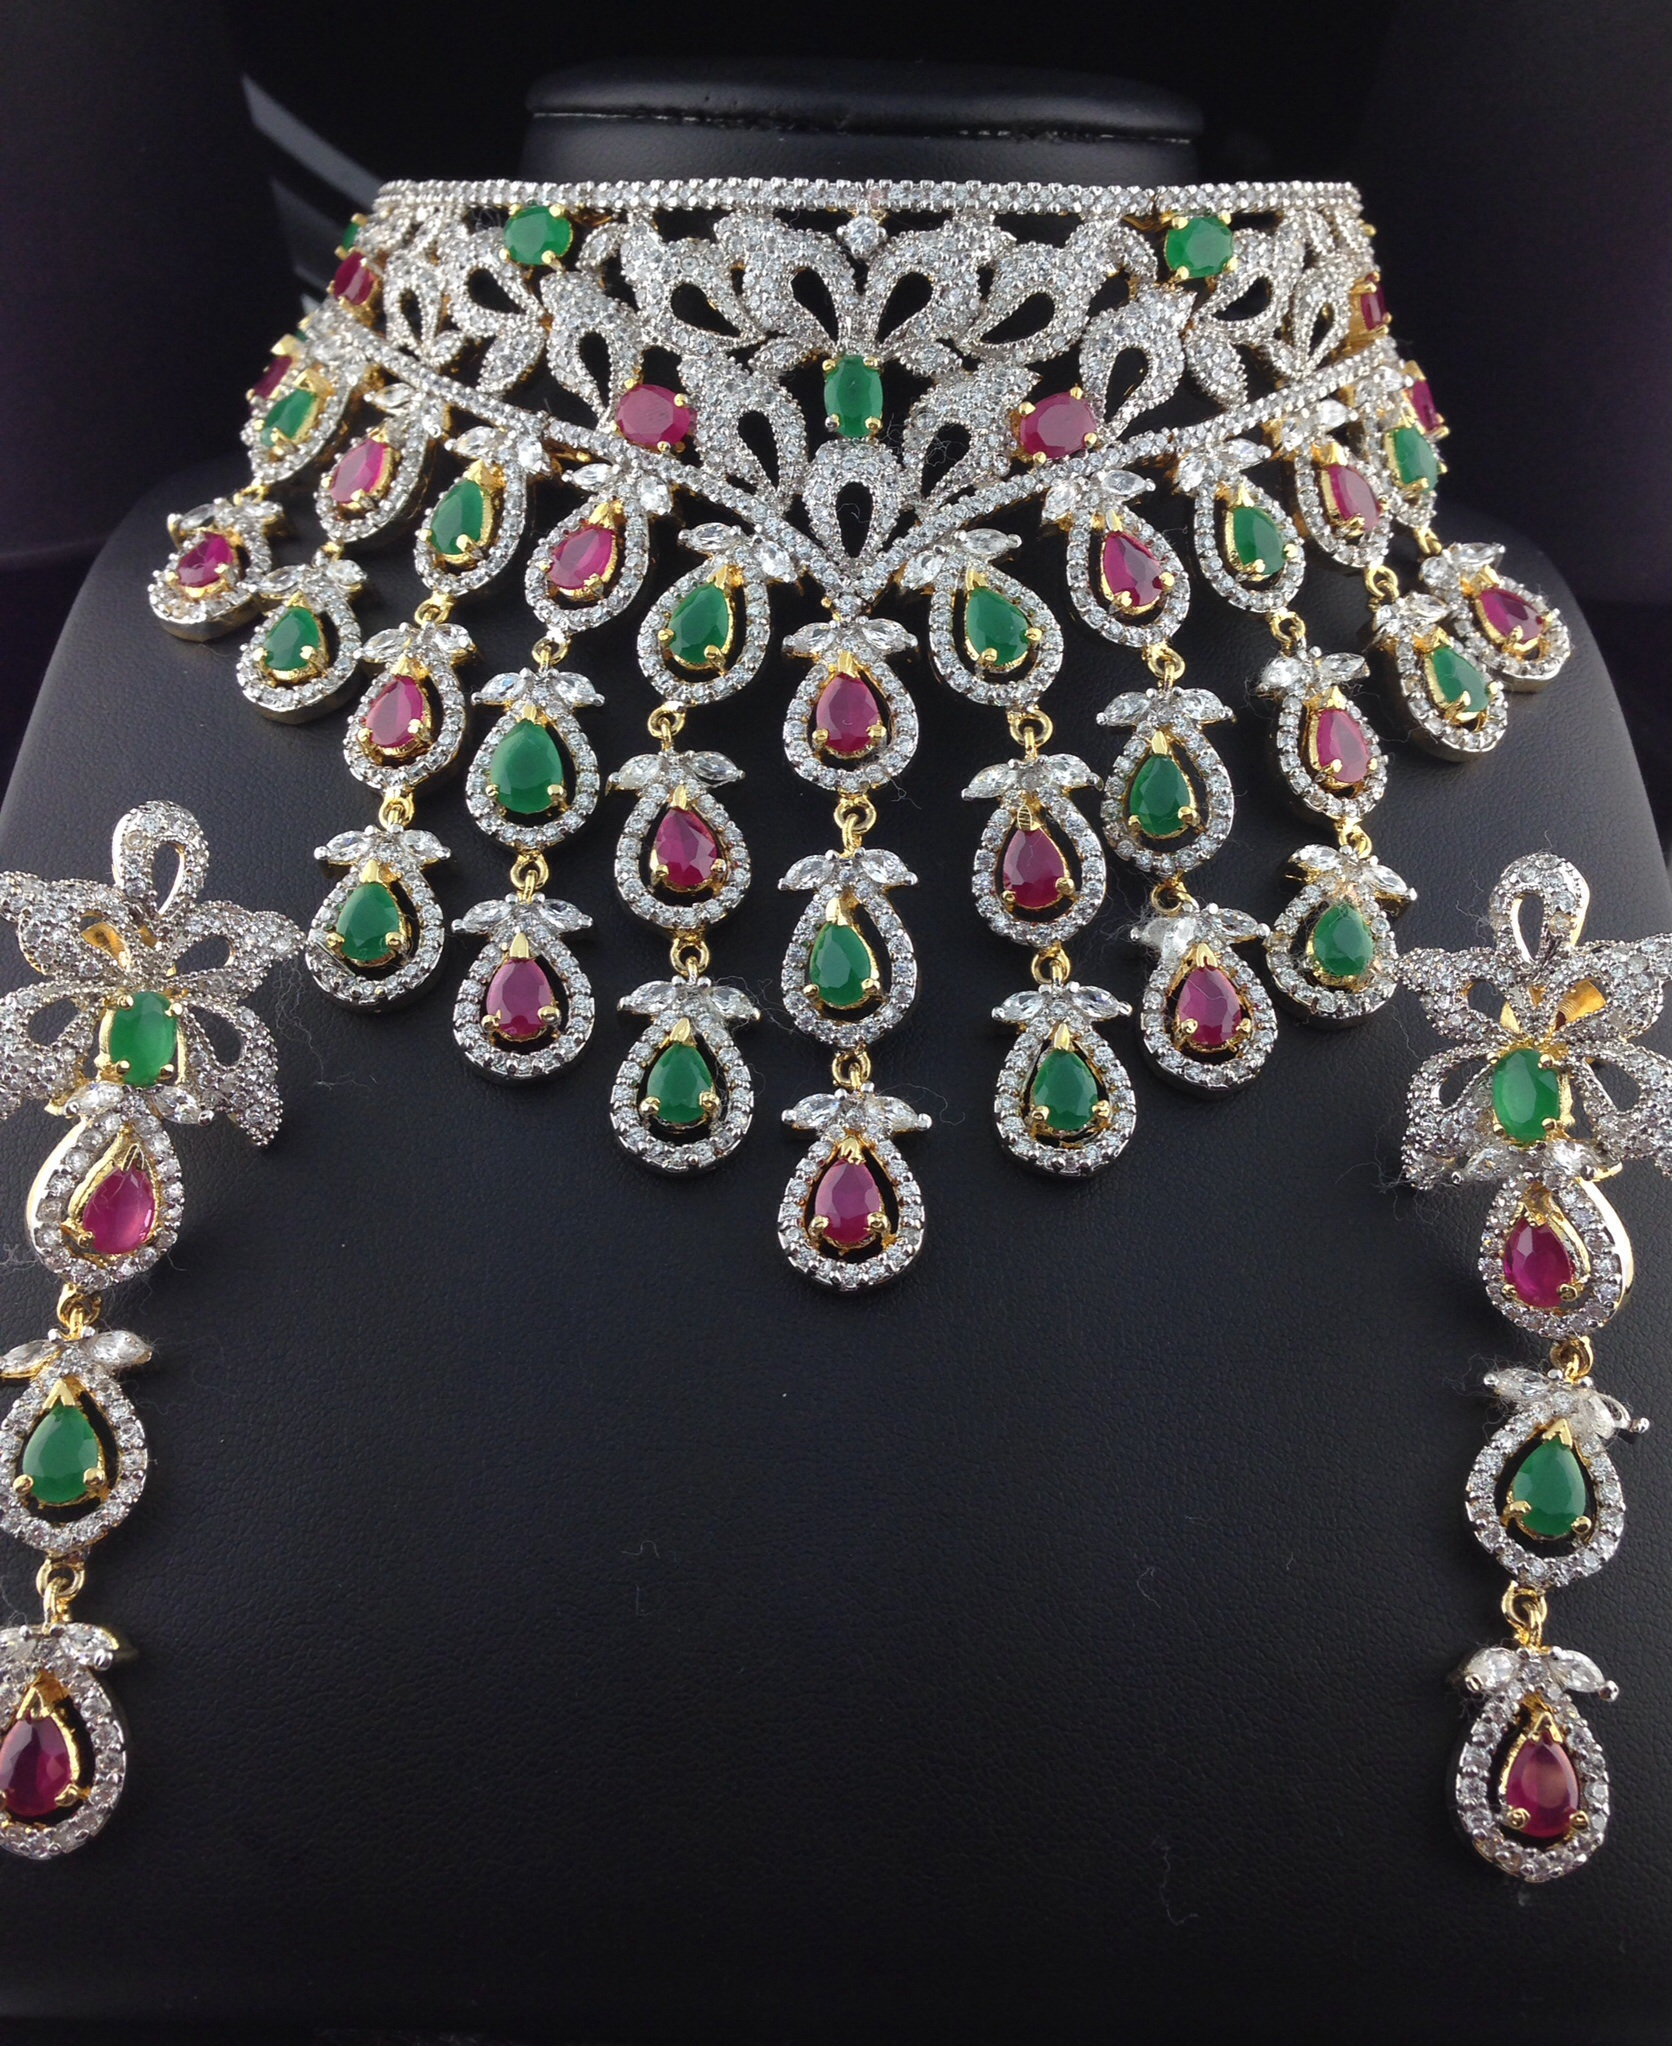 Stunning American Diamond Bridal Set With Rubies and Emeralds.